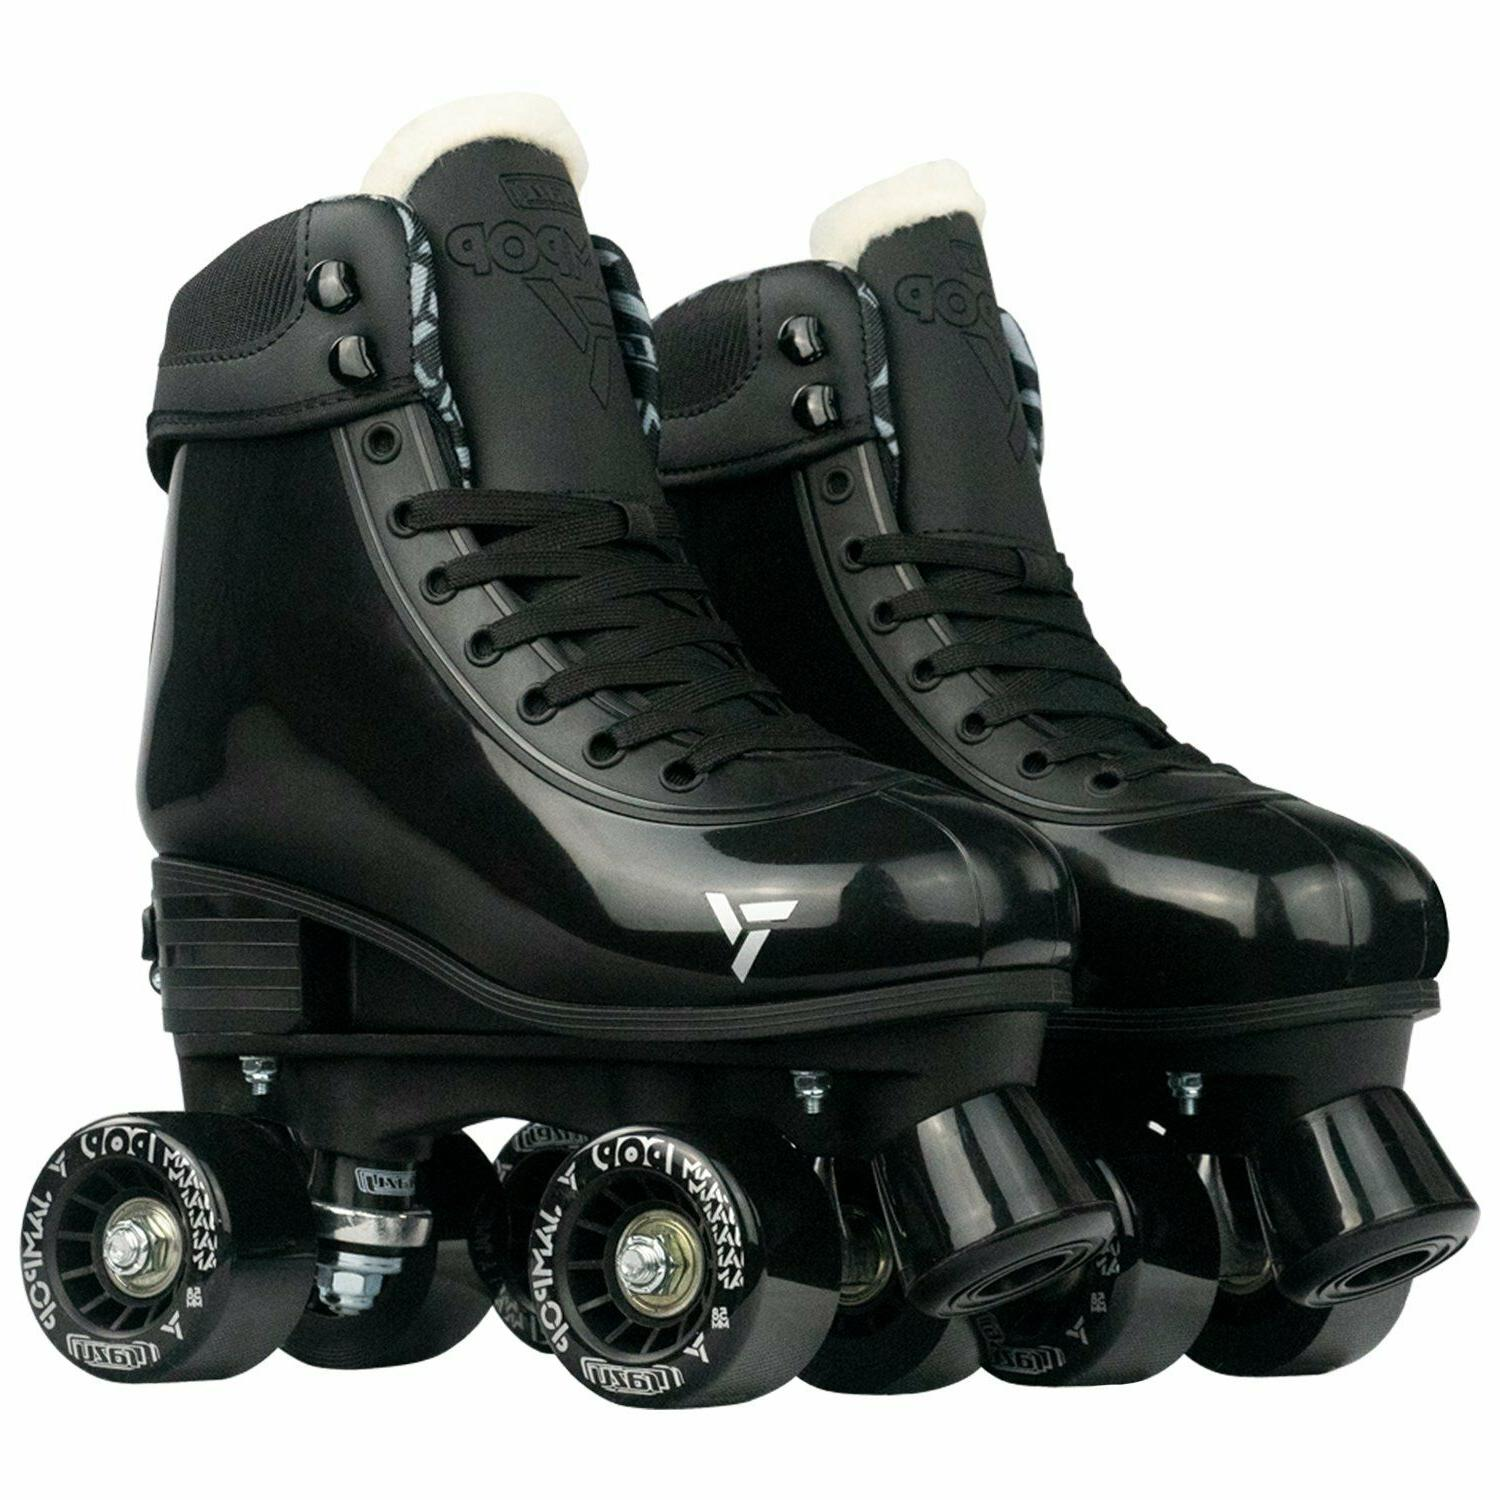 Jam Pop Skates for Boys and Kids by